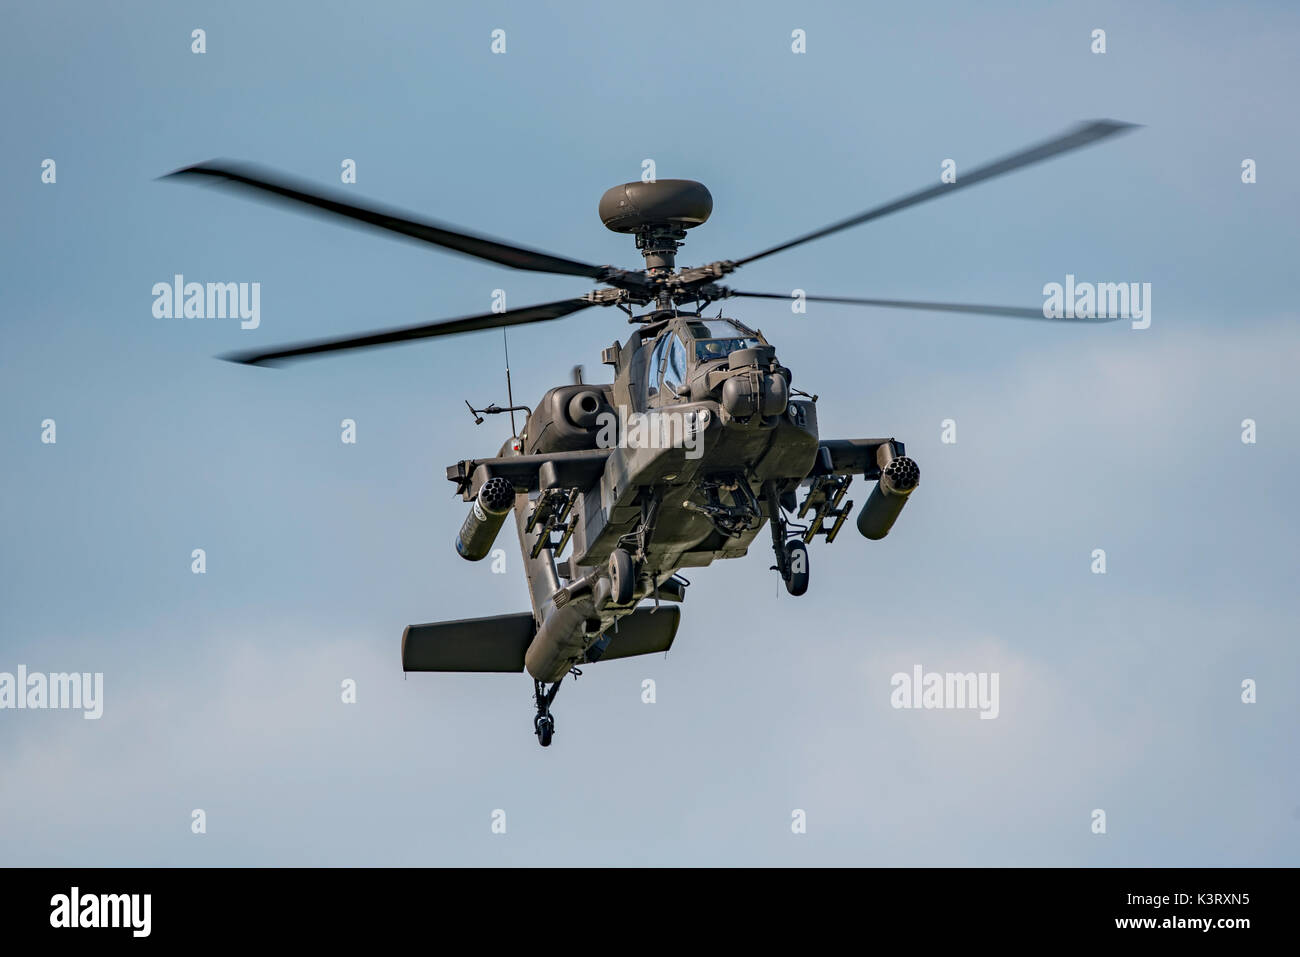 The British Army Air Corps Apache AH1 attack helicopter display at